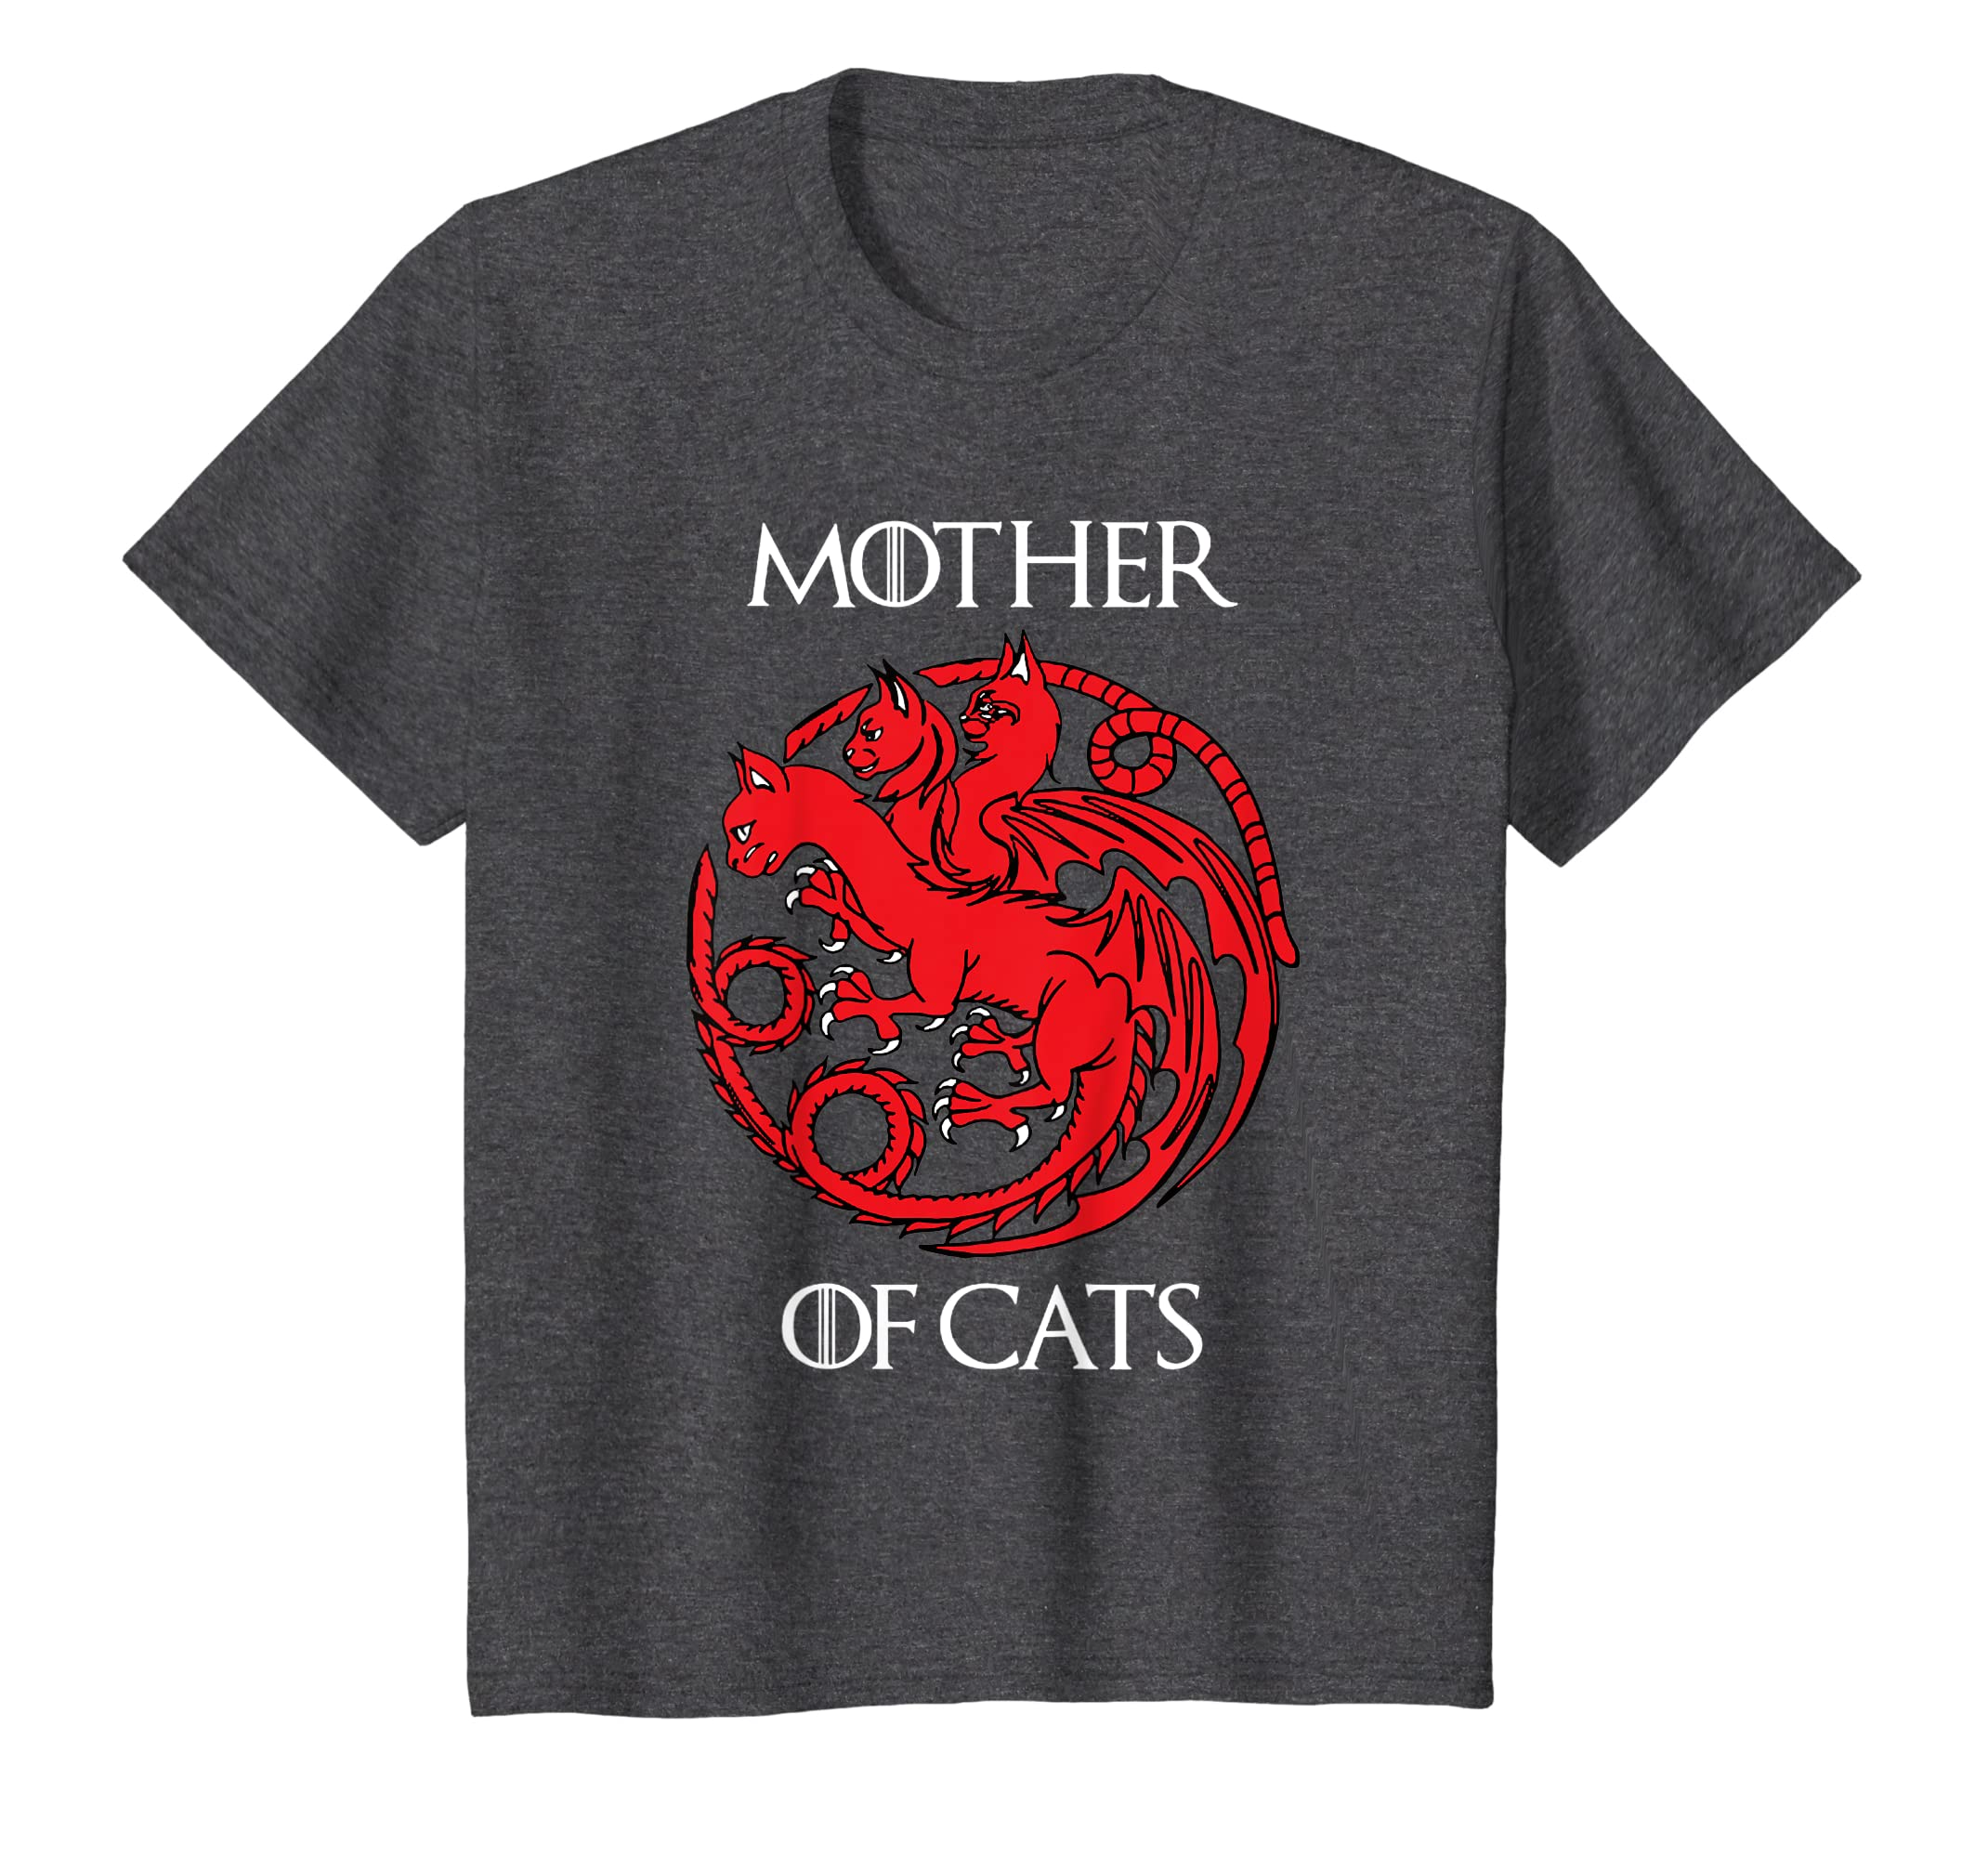 002834b0 Amazon.com: Cat Lovers Shirt - Mother of Cats Hot 2019 T-Shirt: Clothing